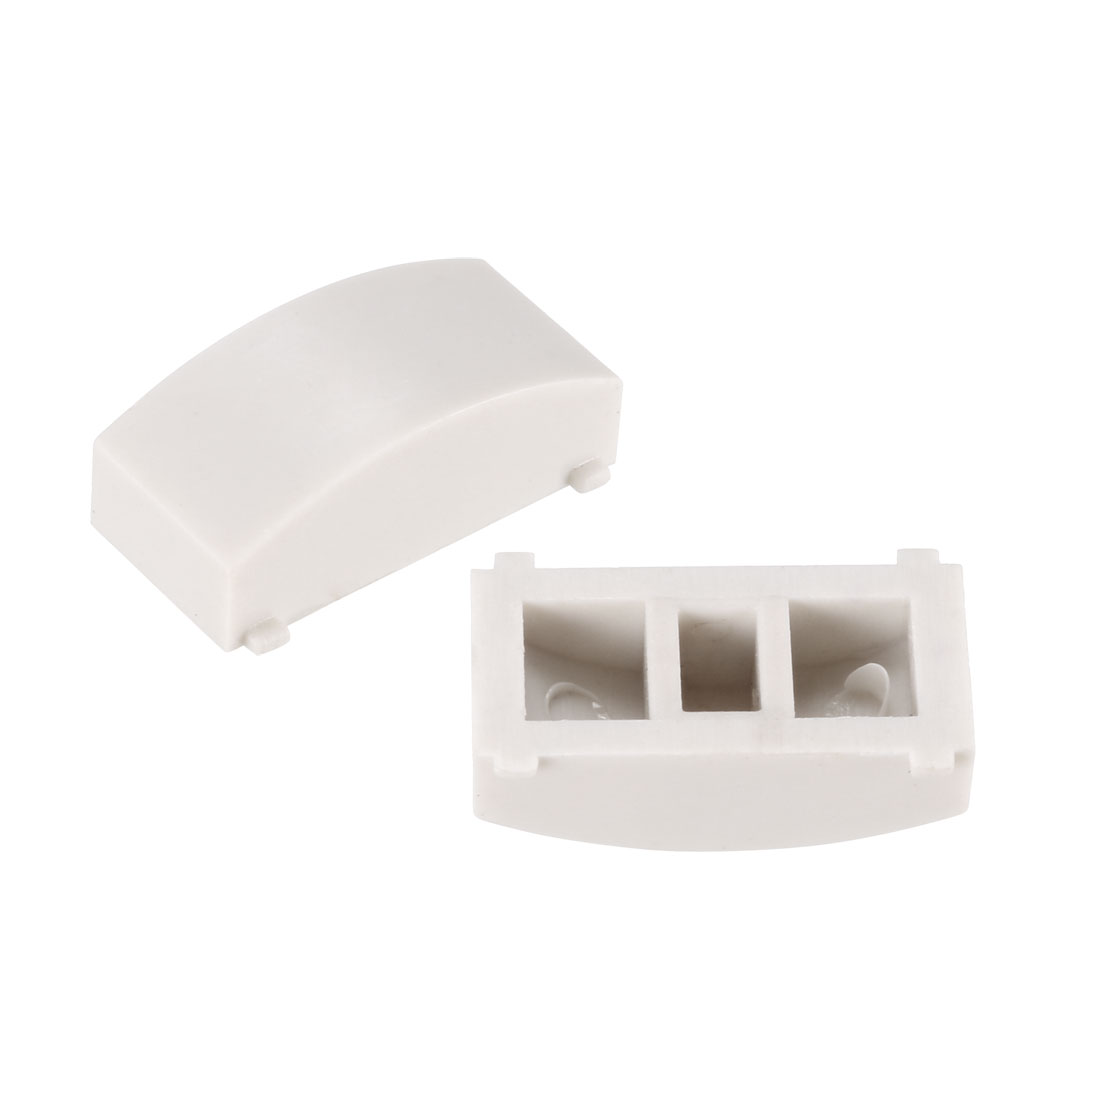 50Pcs Plastic 12.4x4.5mm Tact Switch Cap White for 8x8 Pushbutton Tactile Switch